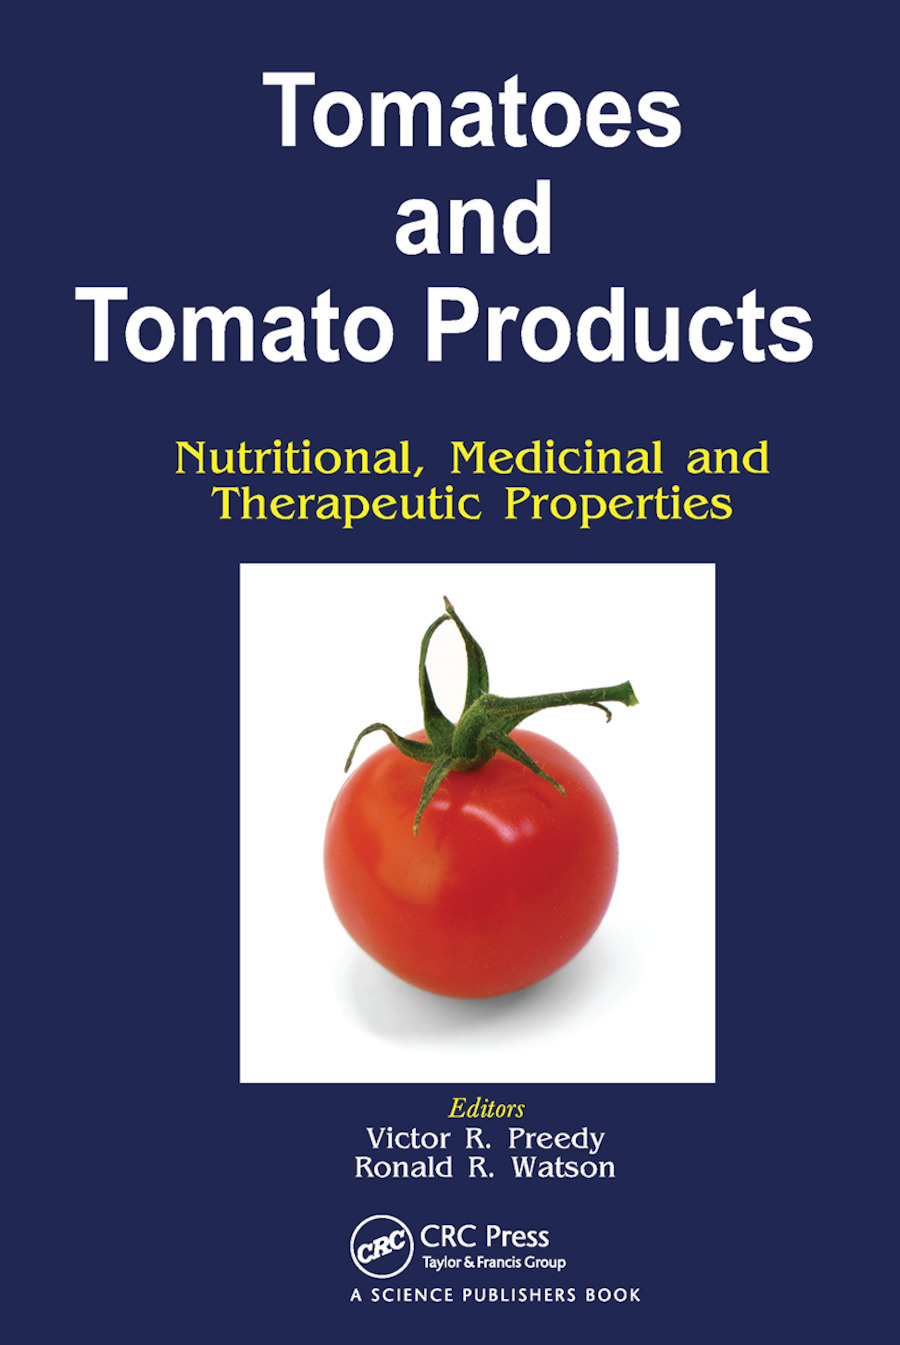 Tomatoes and Tomato Products: Nutritional, Medicinal and Therapeutic Properties book cover